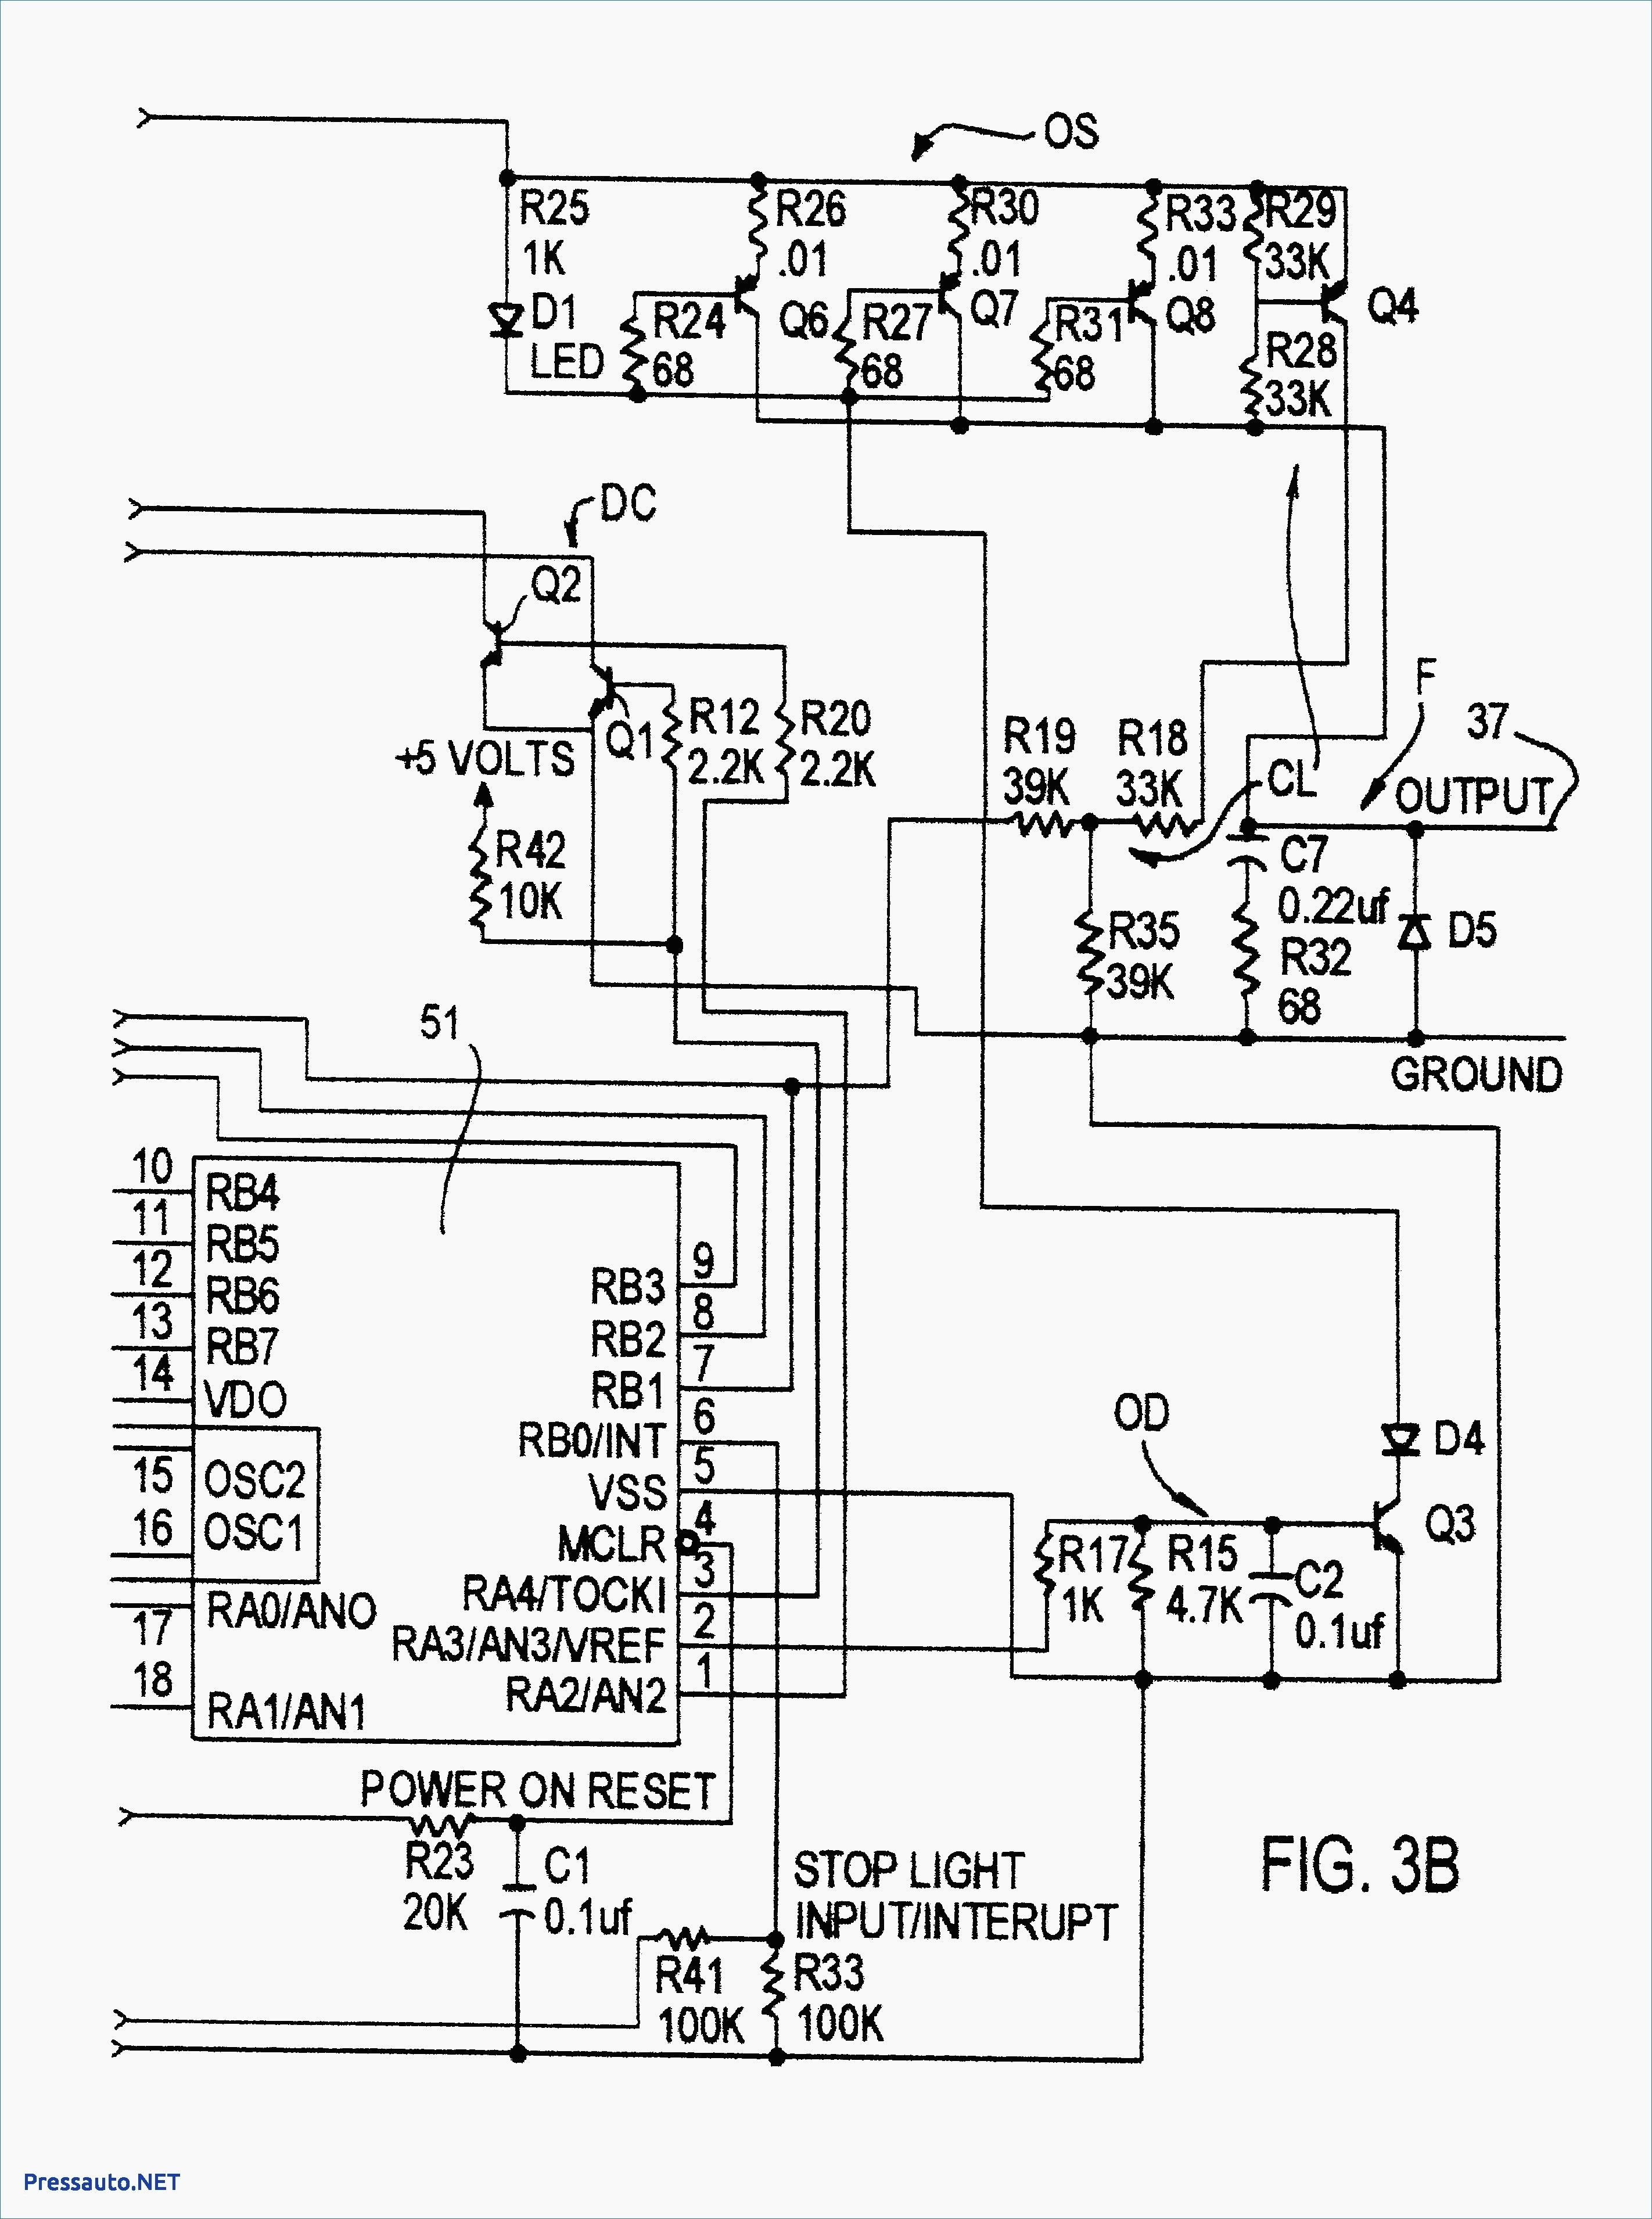 Wiring Diagram For 3 Way Switch Ceiling Fan